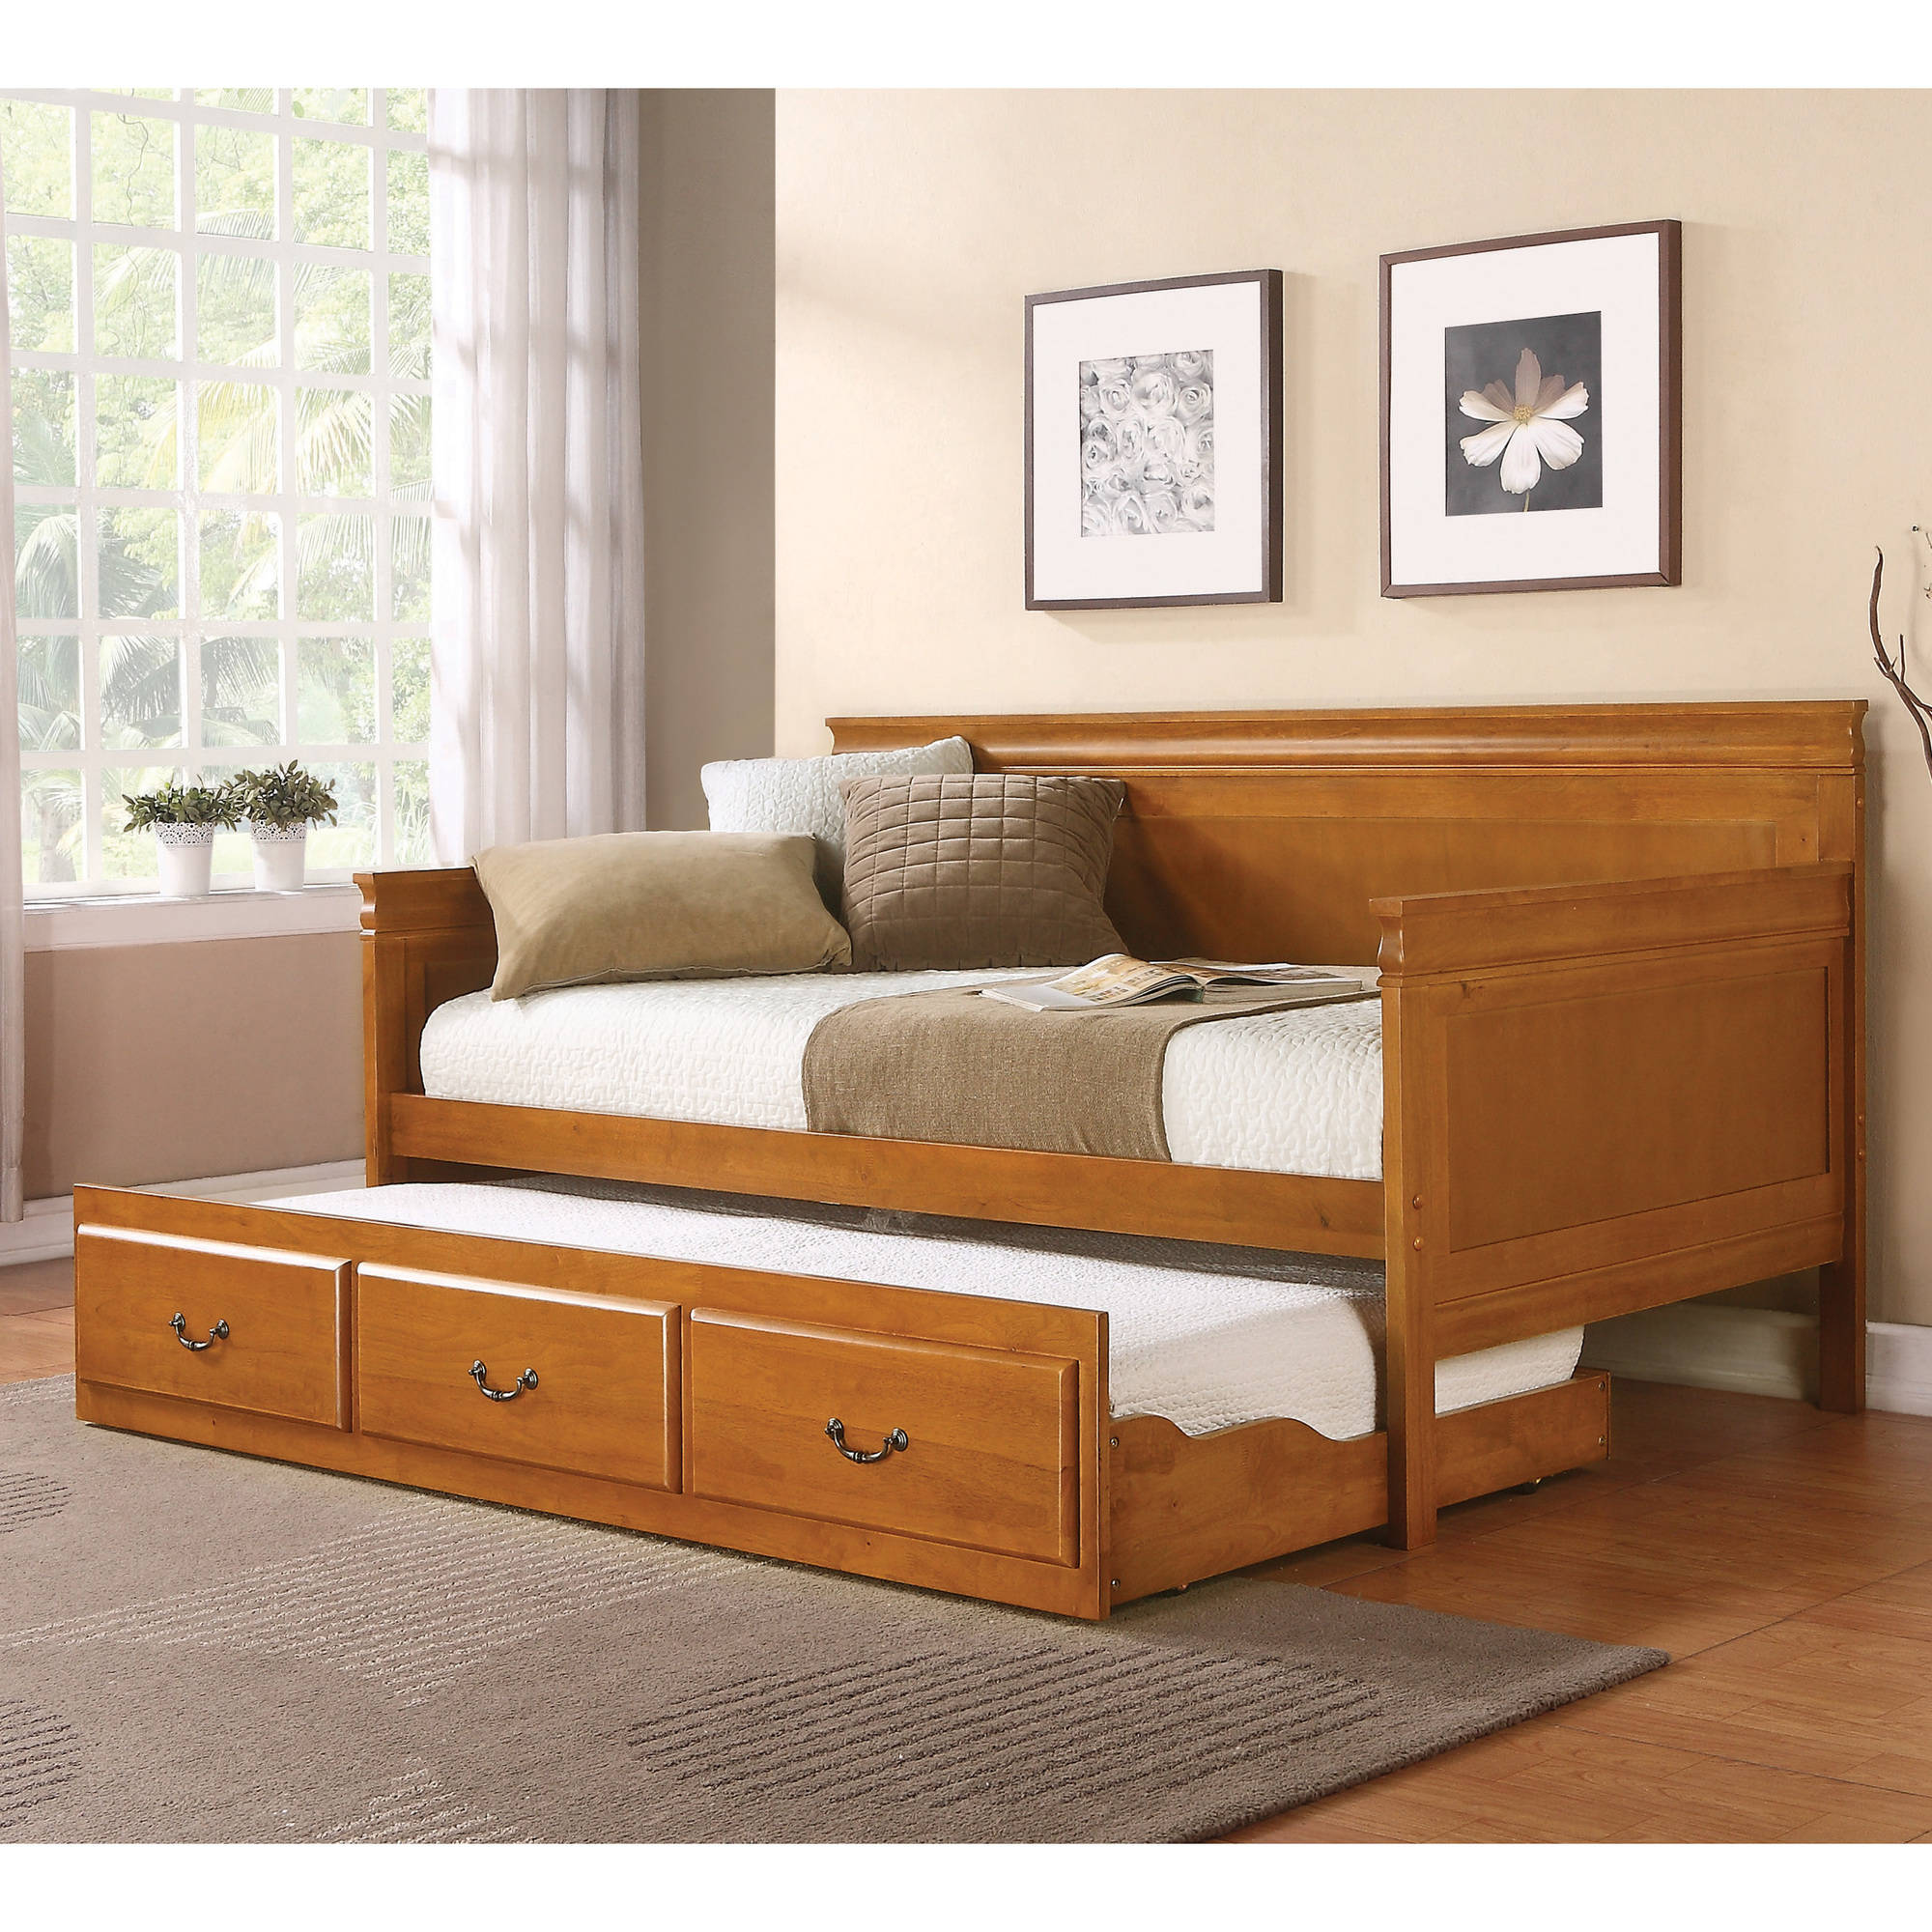 Coaster Twin Day Bed in Oak Finish (Box 1 of 3) by Coaster Company